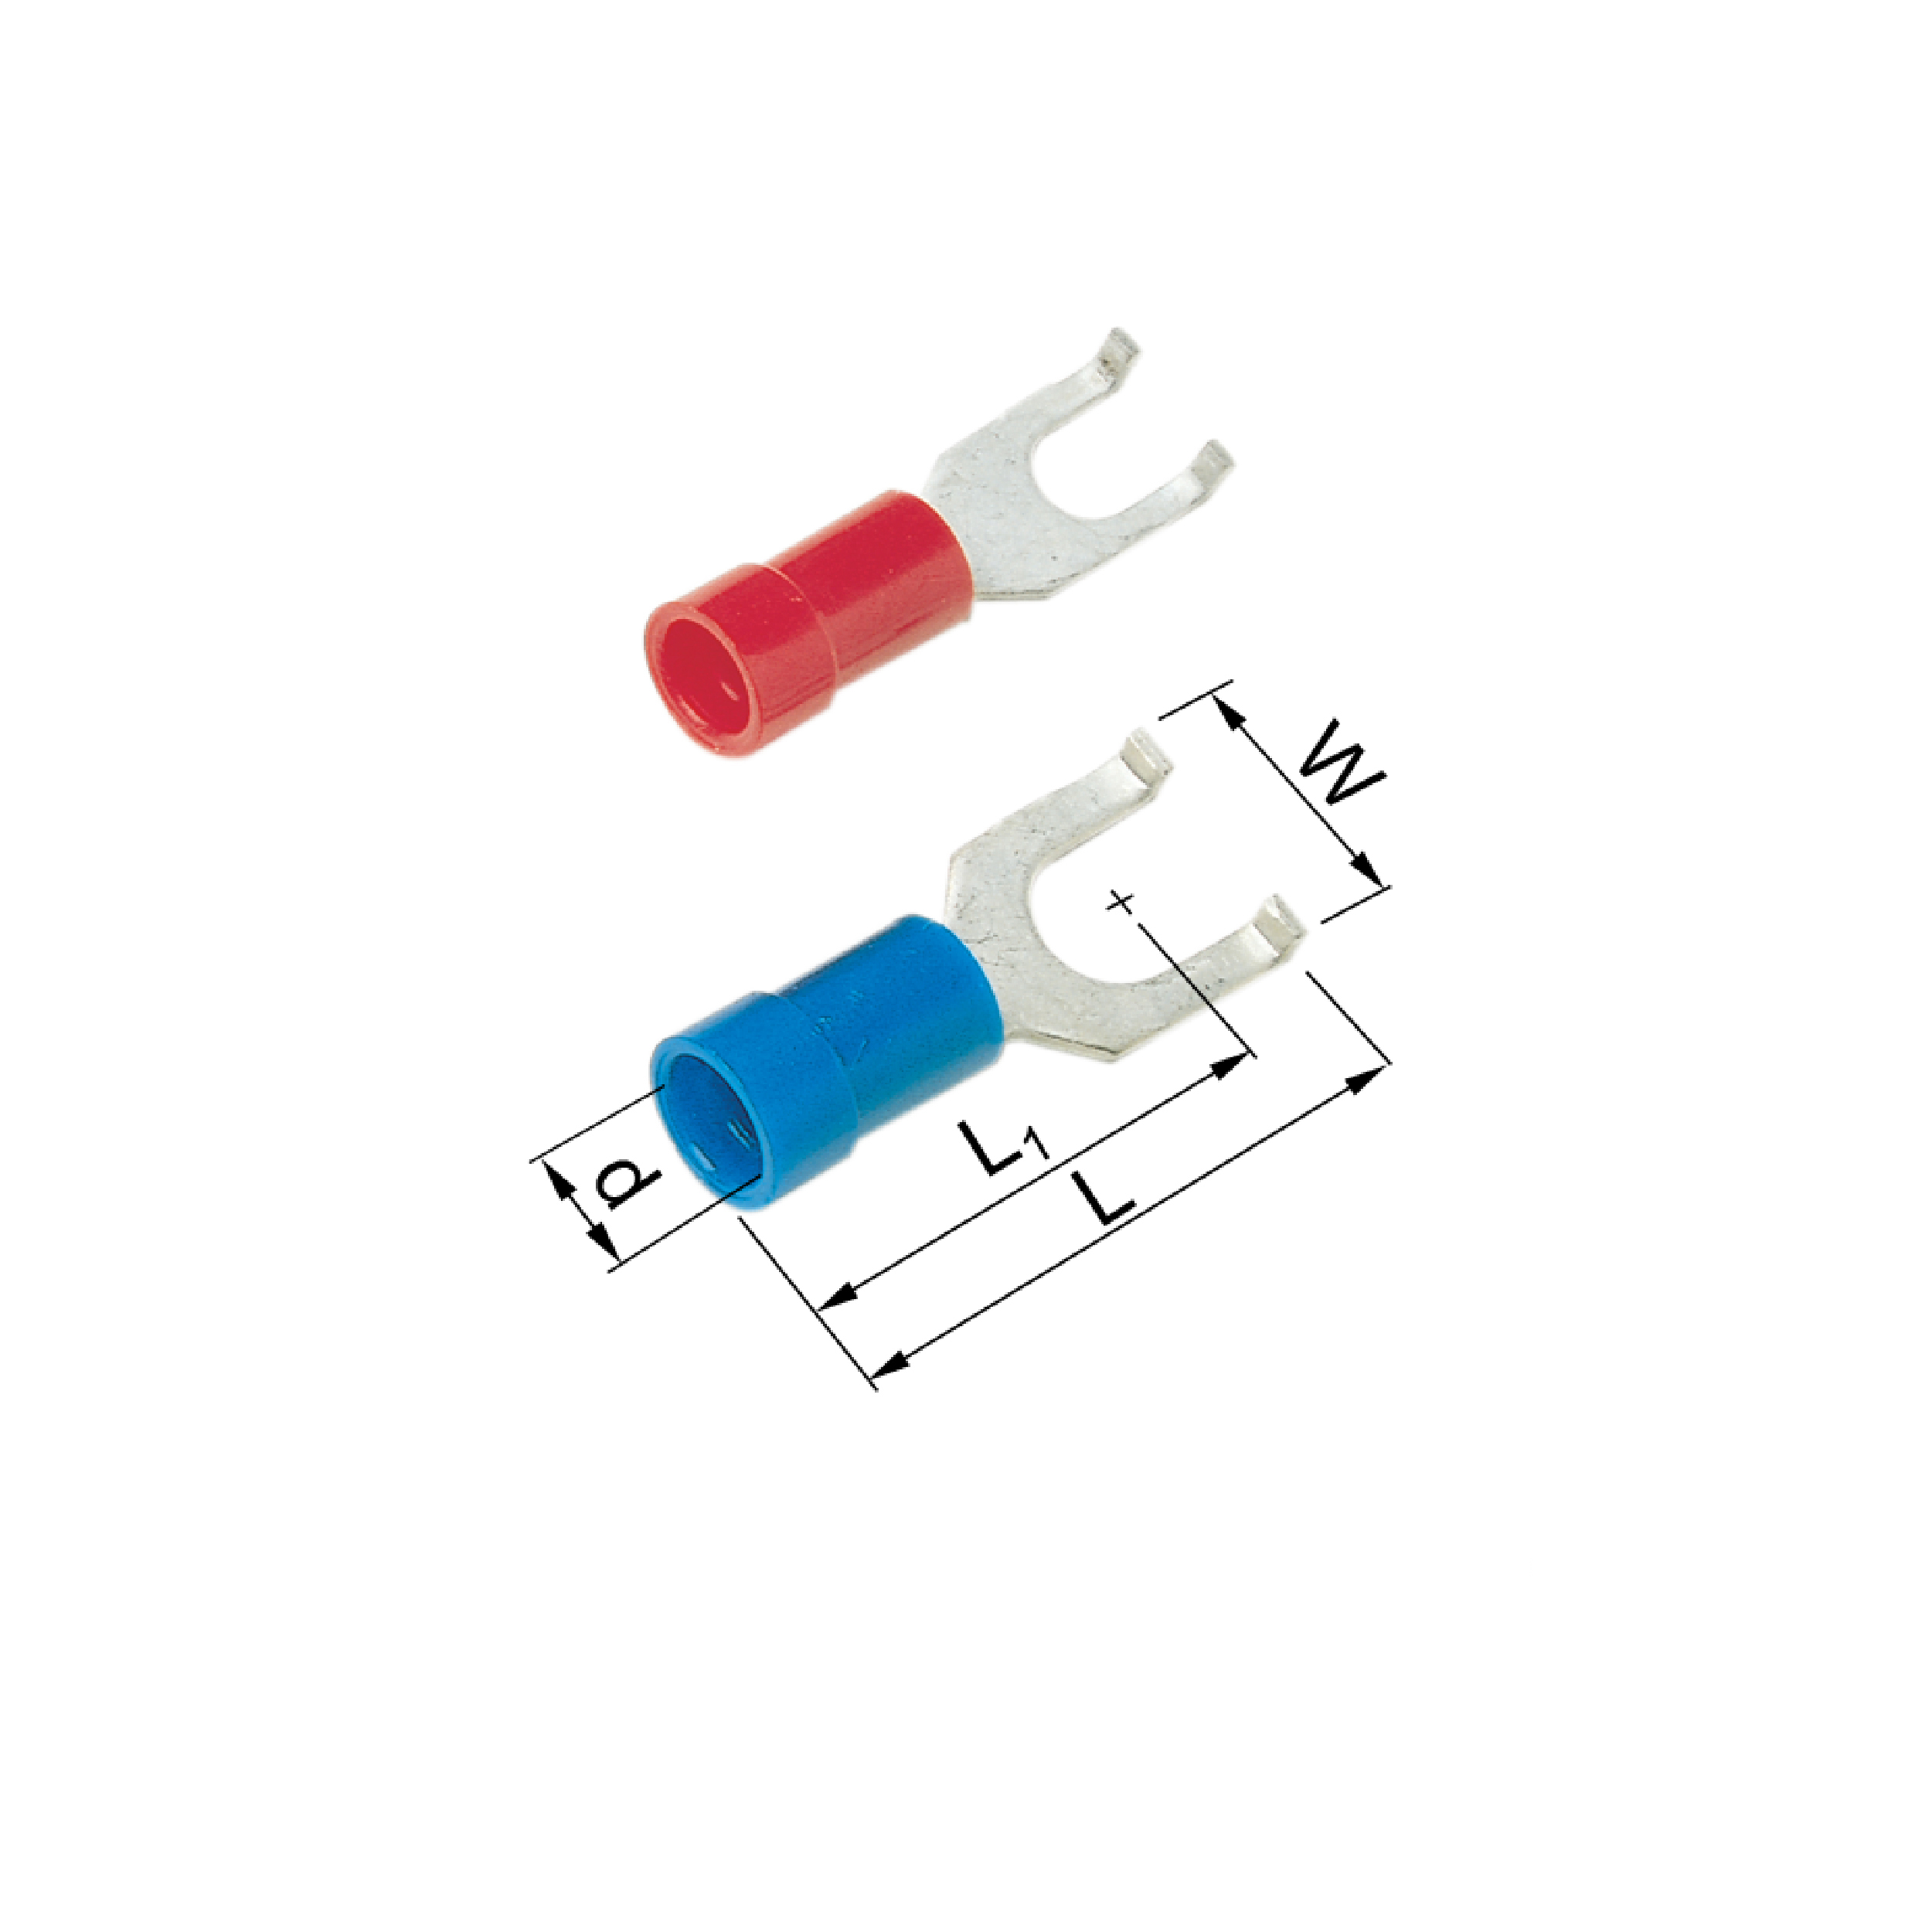 Elpress Pre-Insulated Flanged Fork Terminals - Halogen Free (0.5-2.5mm²) A1537GB, A1543GB, A2543GB, A2553GB